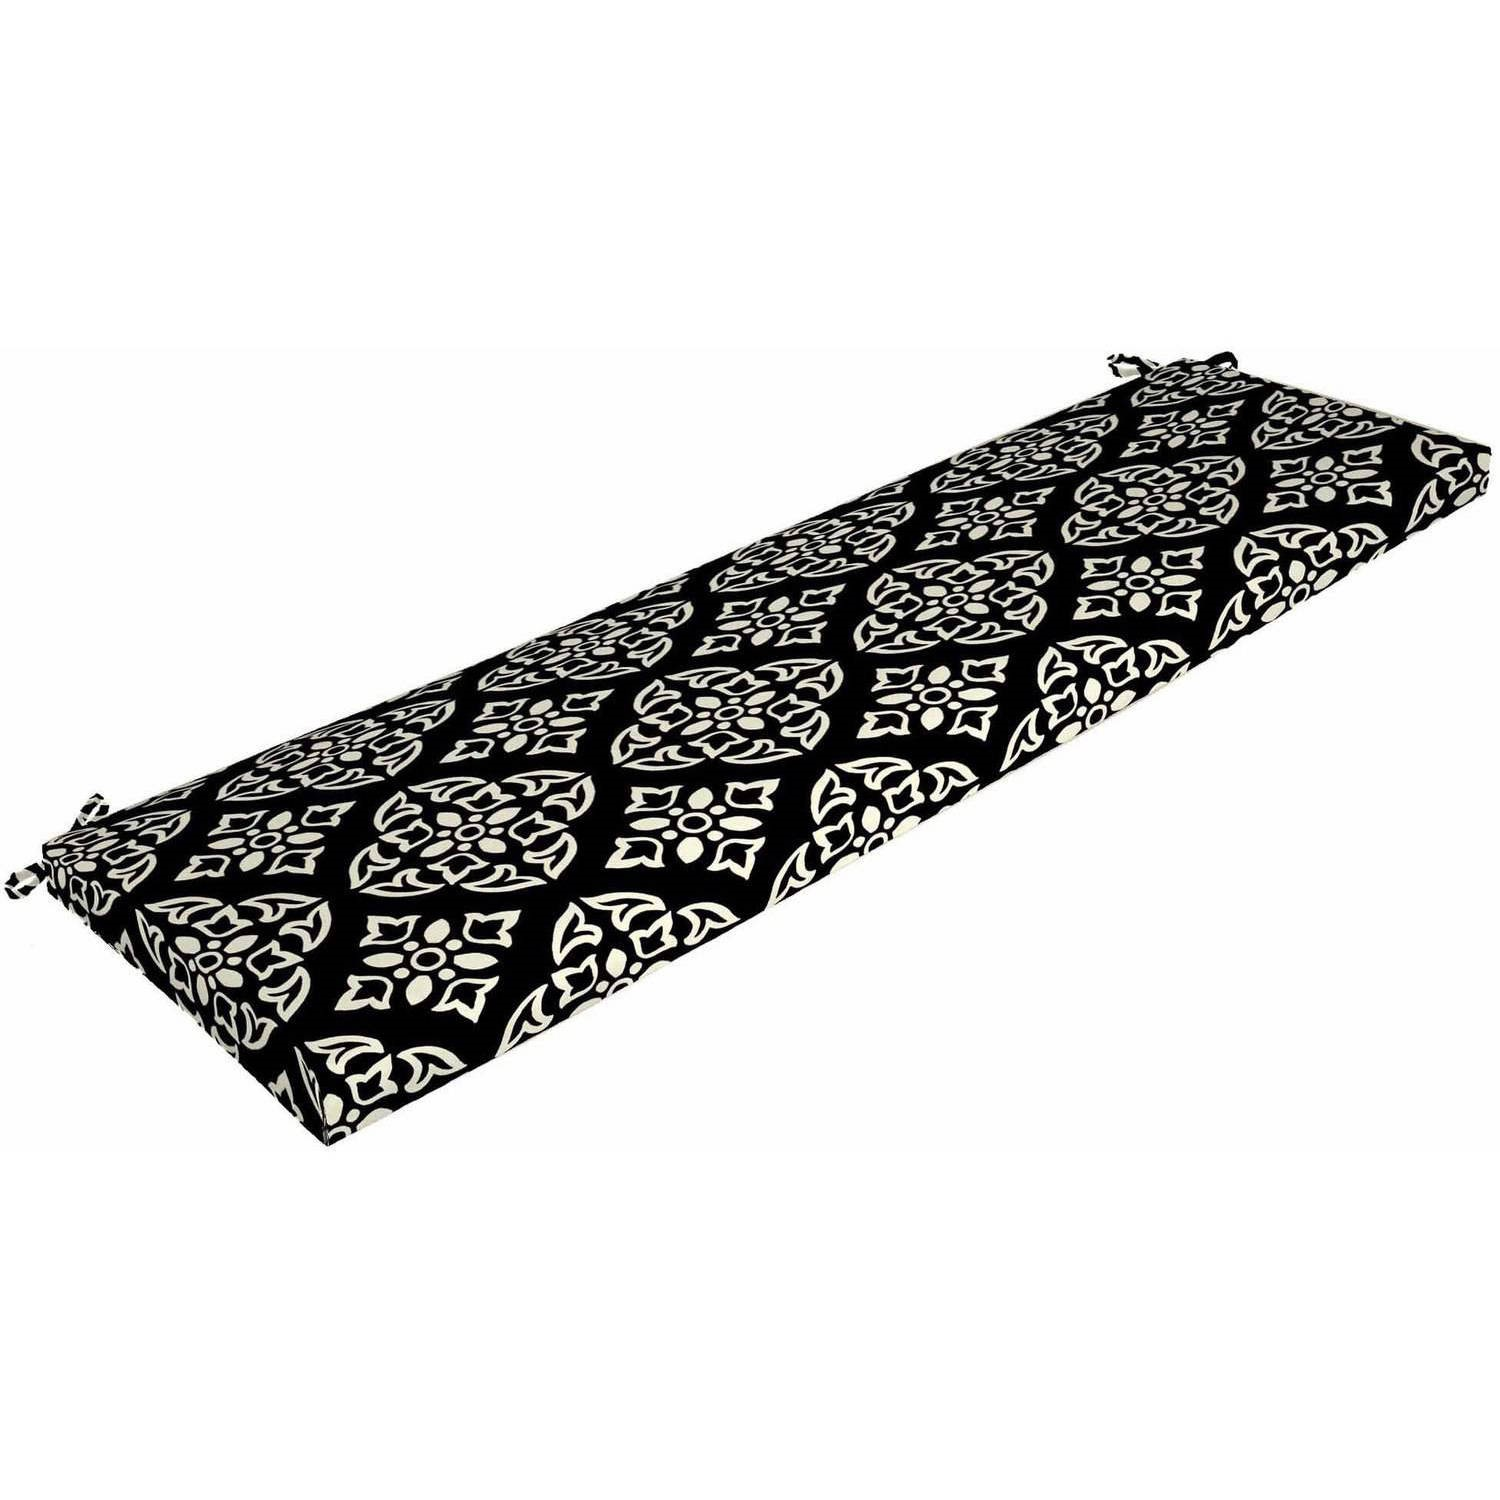 """Better Homes & Gardens Black and White Medallion Outdoor Patio Bench Cushion, 46""""W x 17""""D x 3""""H"""